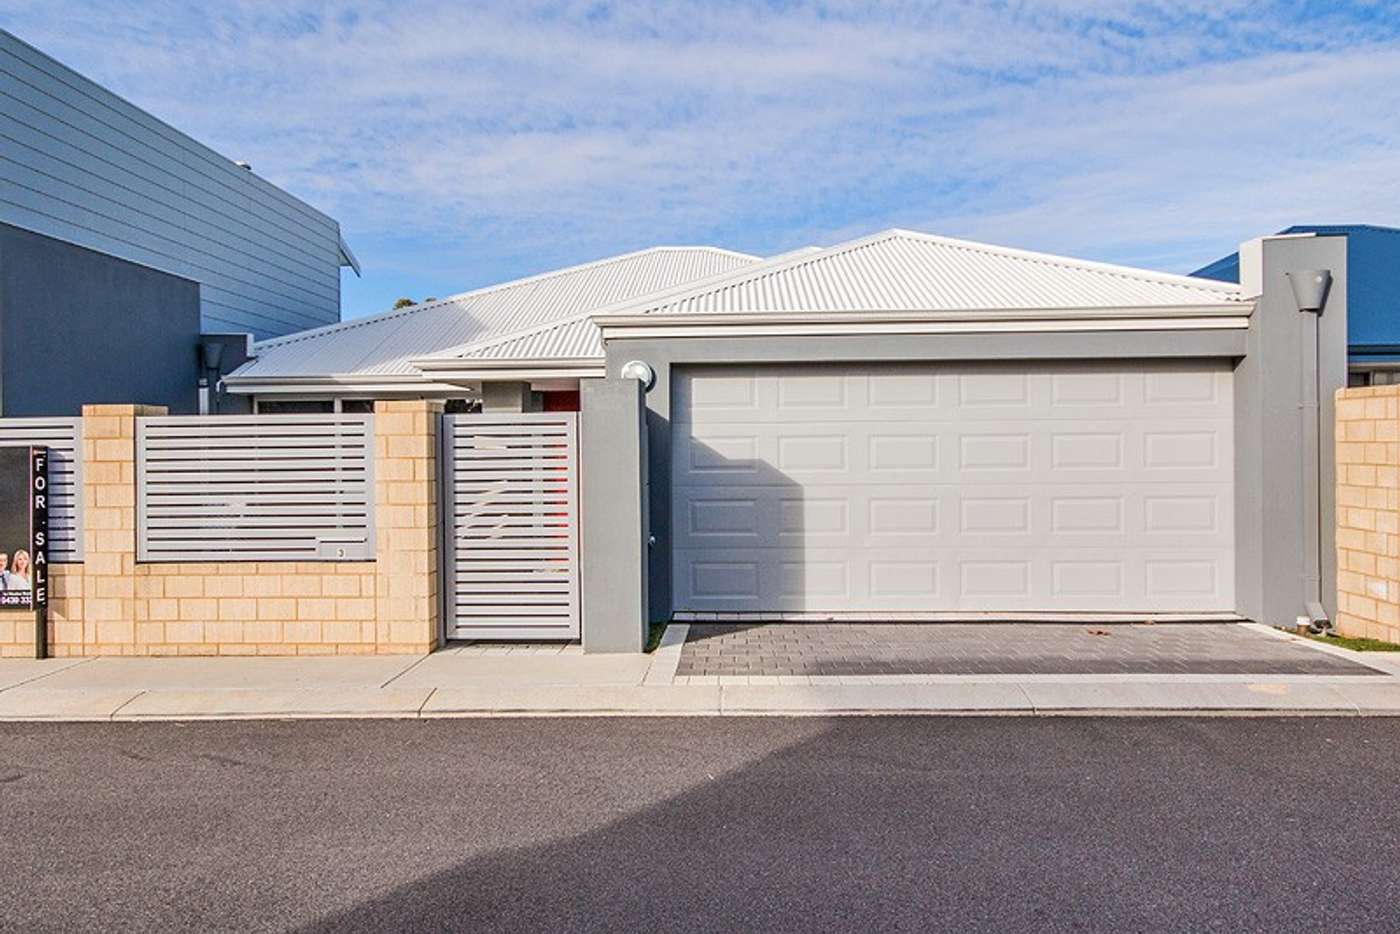 Main view of Homely house listing, 3 McDermott Road, Kwinana Town Centre WA 6167